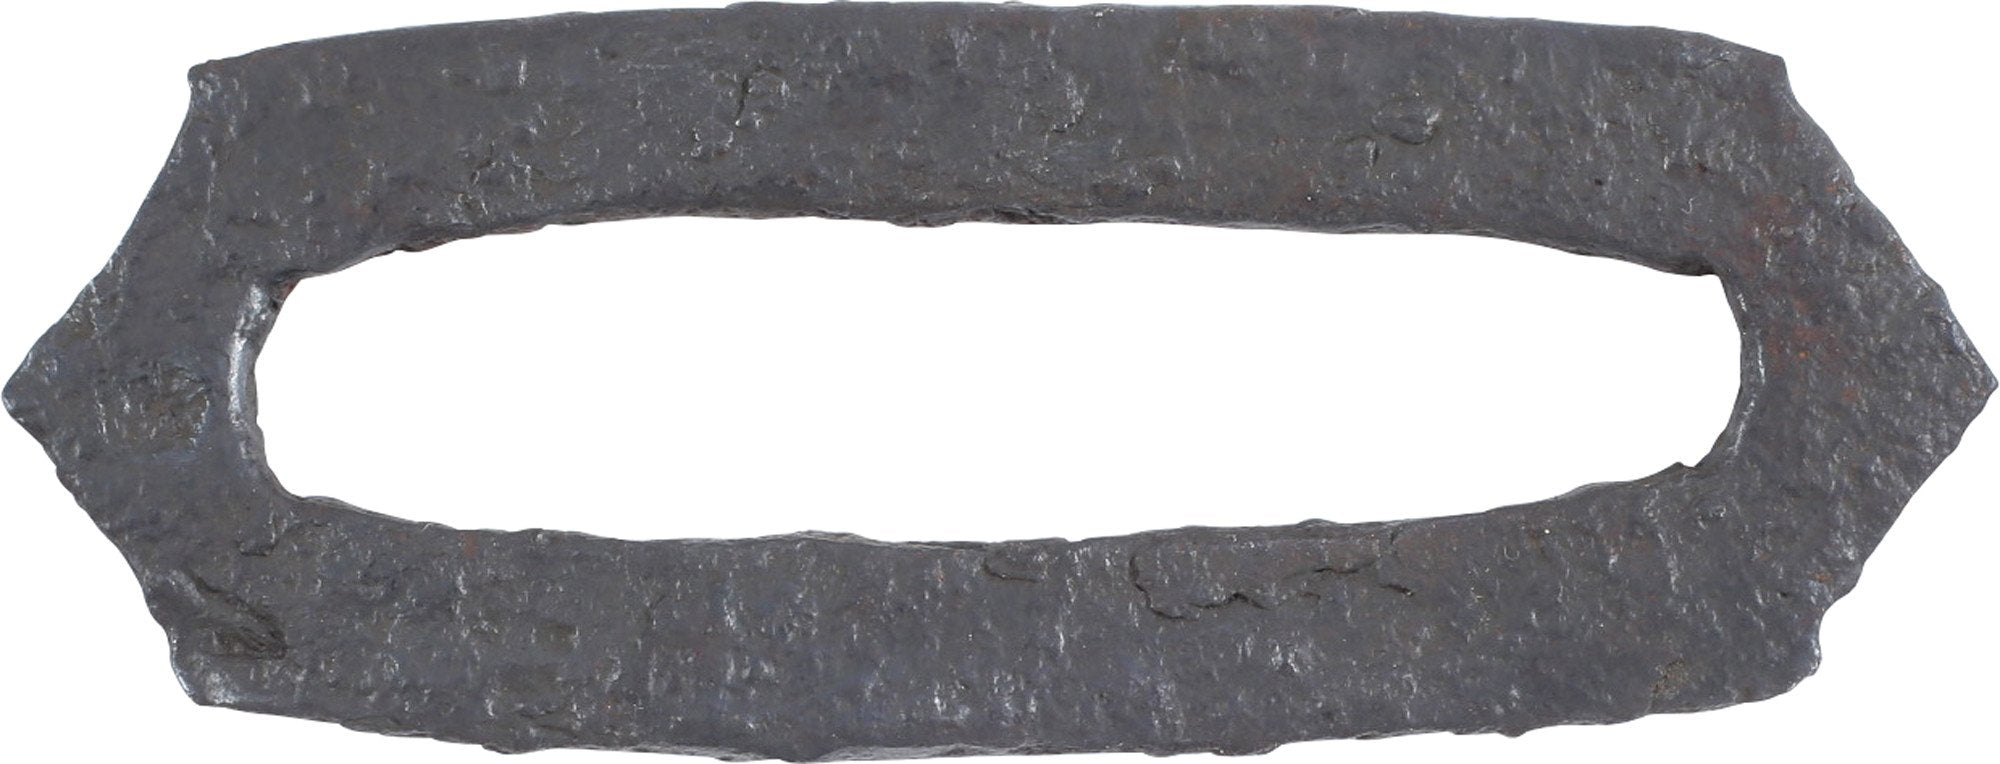 VIKING FIRE STARTER C.866-1067 AD - Fagan Arms